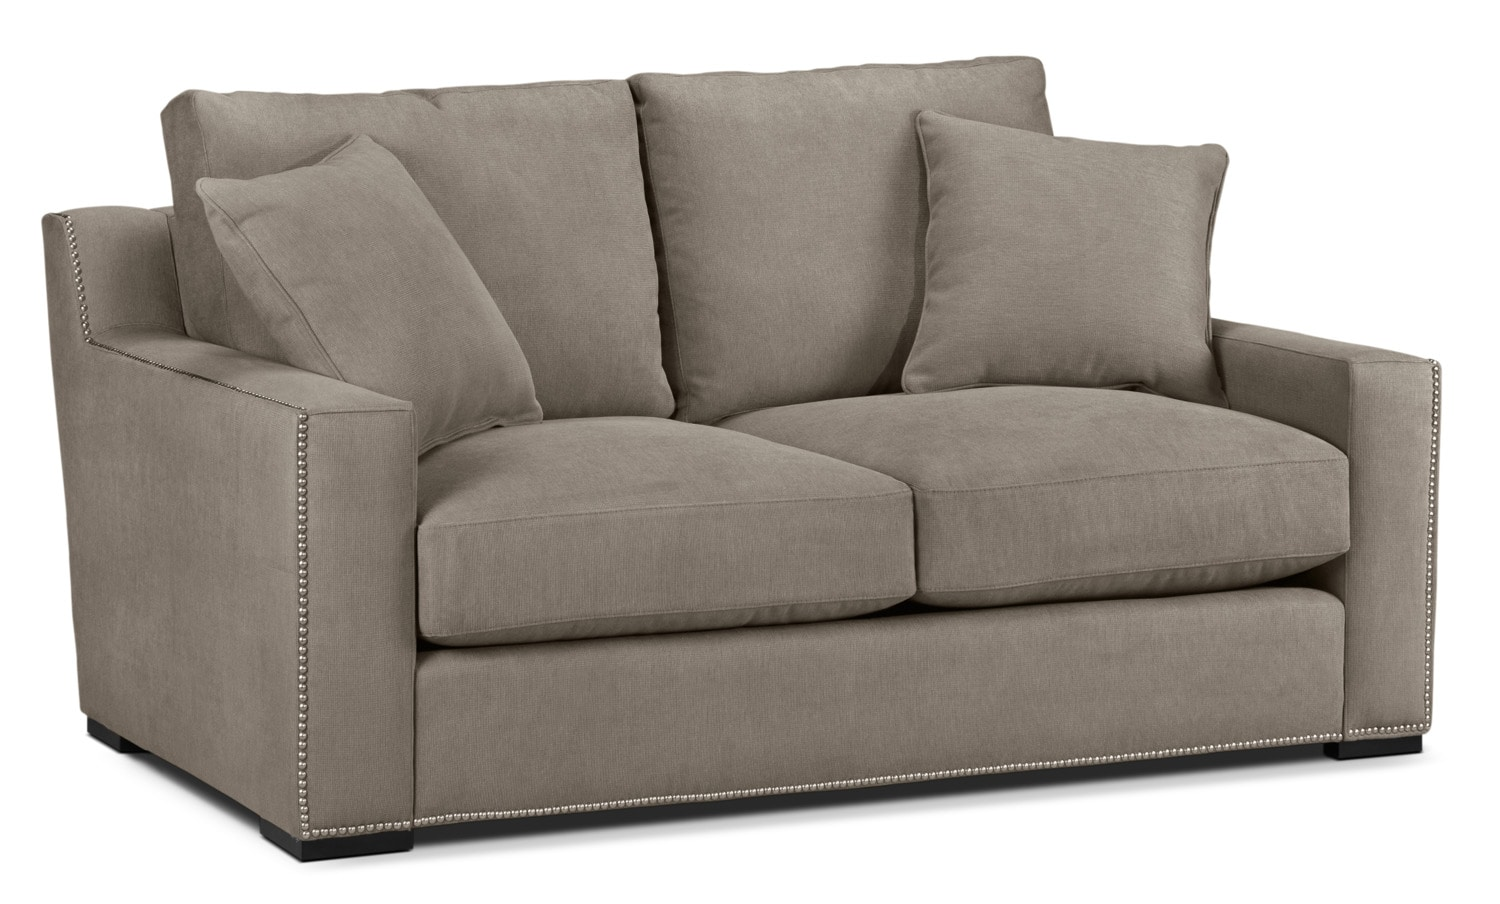 Ethan Loveseat - Taupe